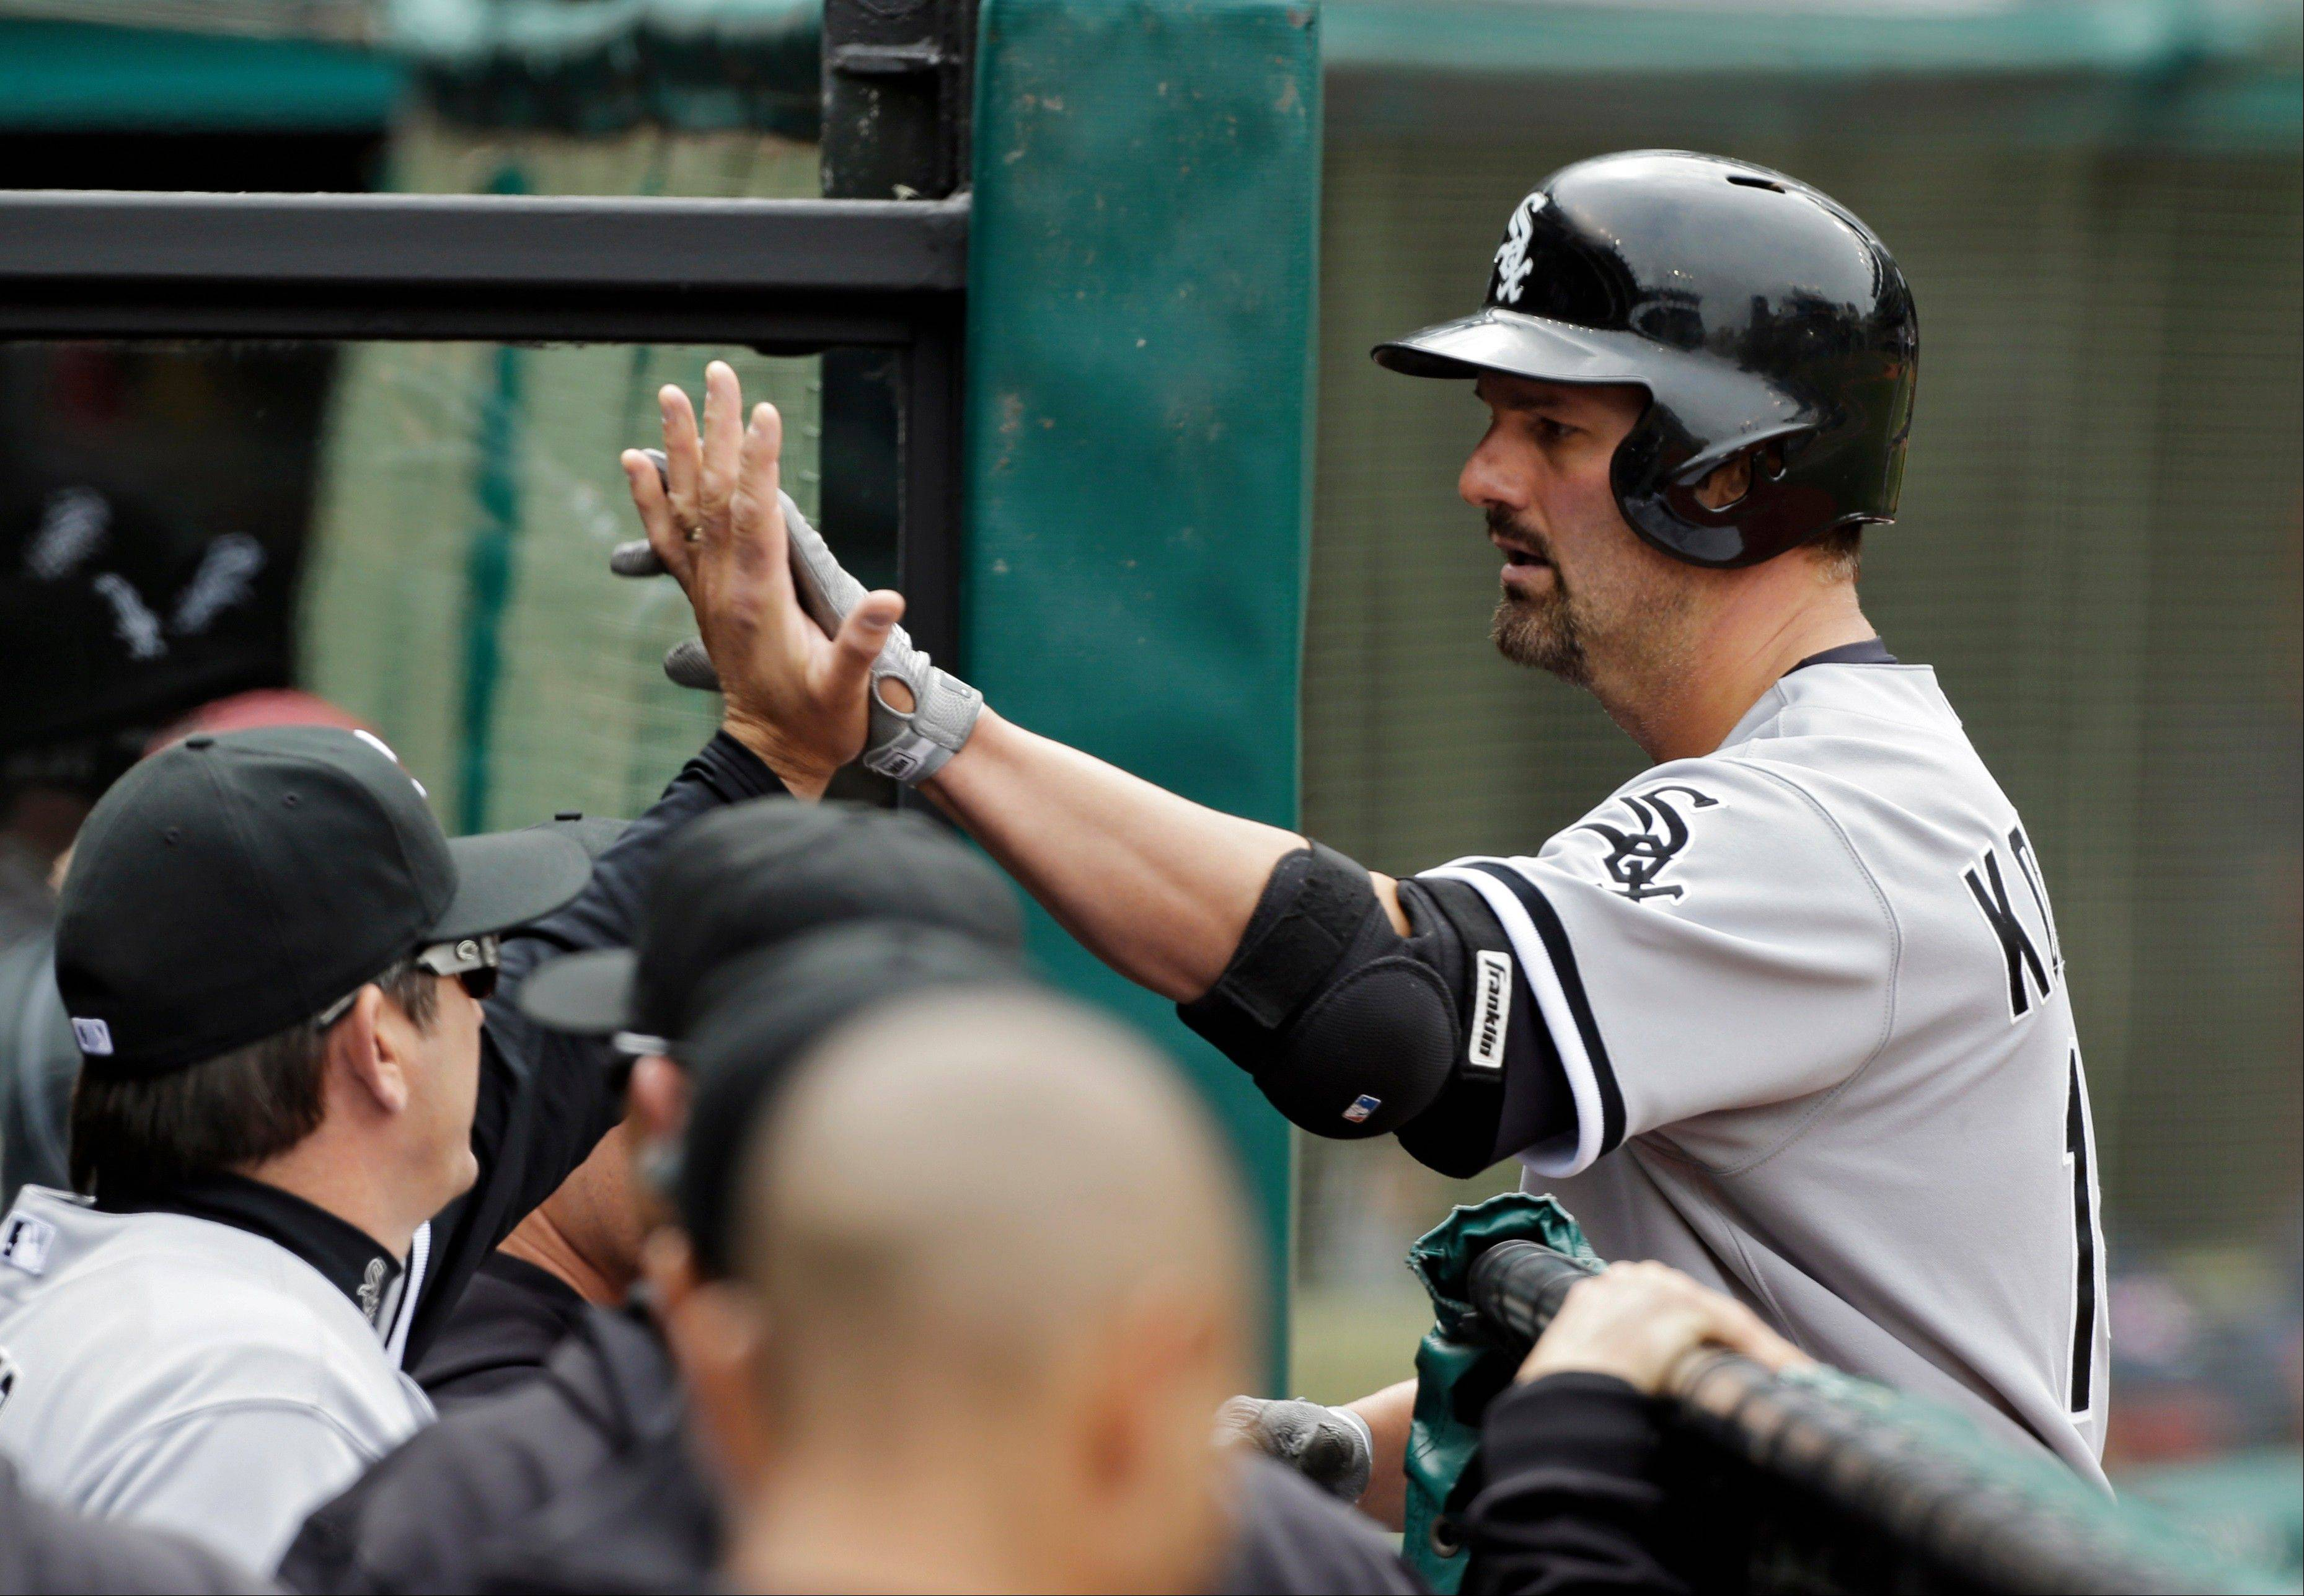 Chicago White Sox first baseman Paul Konerko is welcomed to the dugout after a two-run home run in the sixth inning of an MLB baseball game against the Cleveland Indians Sunday, April 14, 2013, in Cleveland. Konerko�s home run proved to be the game winner as the White Sox held on for a 3-1 win.